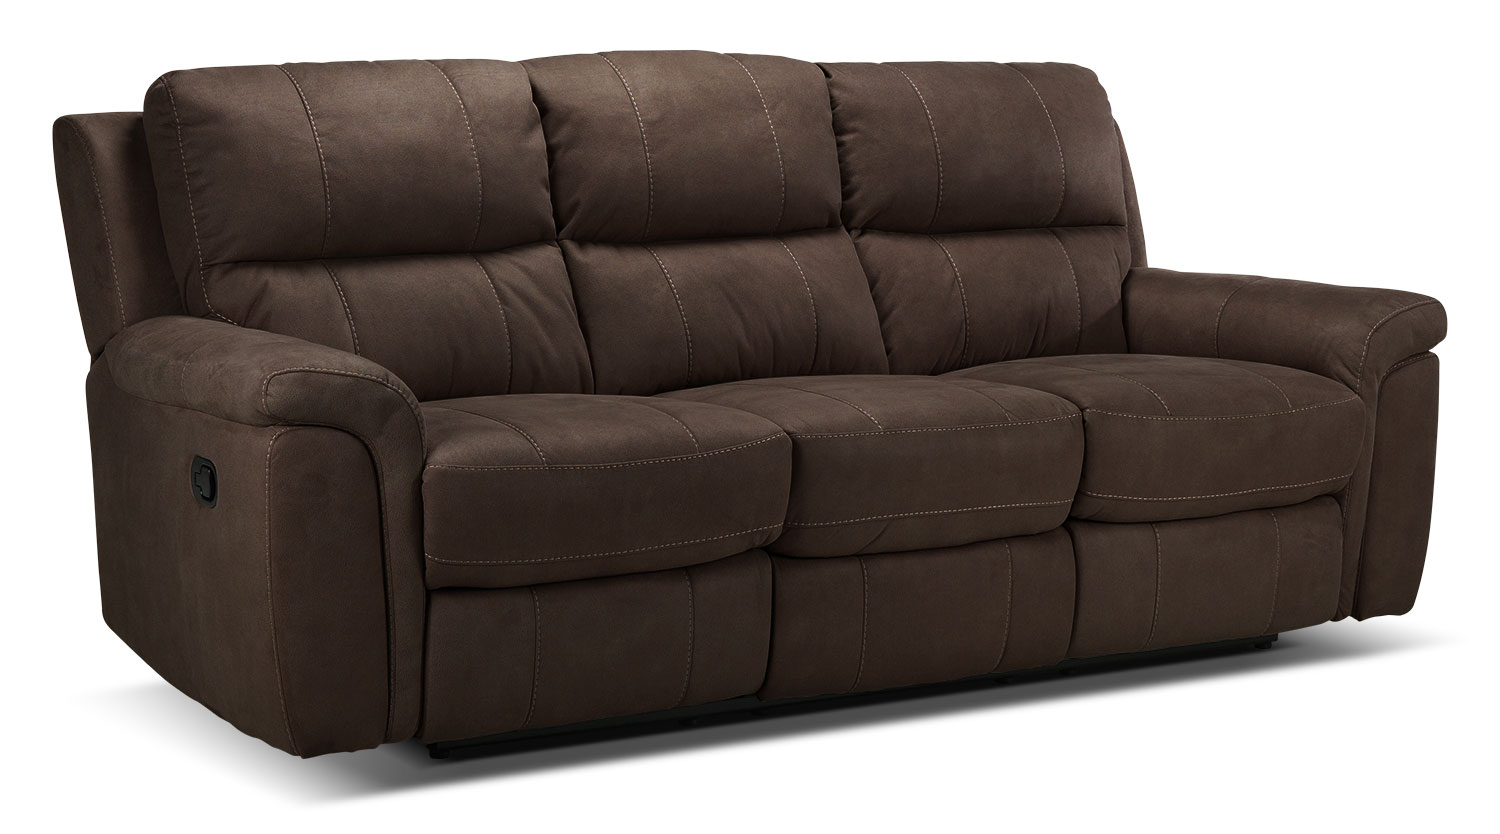 Living Room Furniture - Roarke Reclining Sofa - Walnut